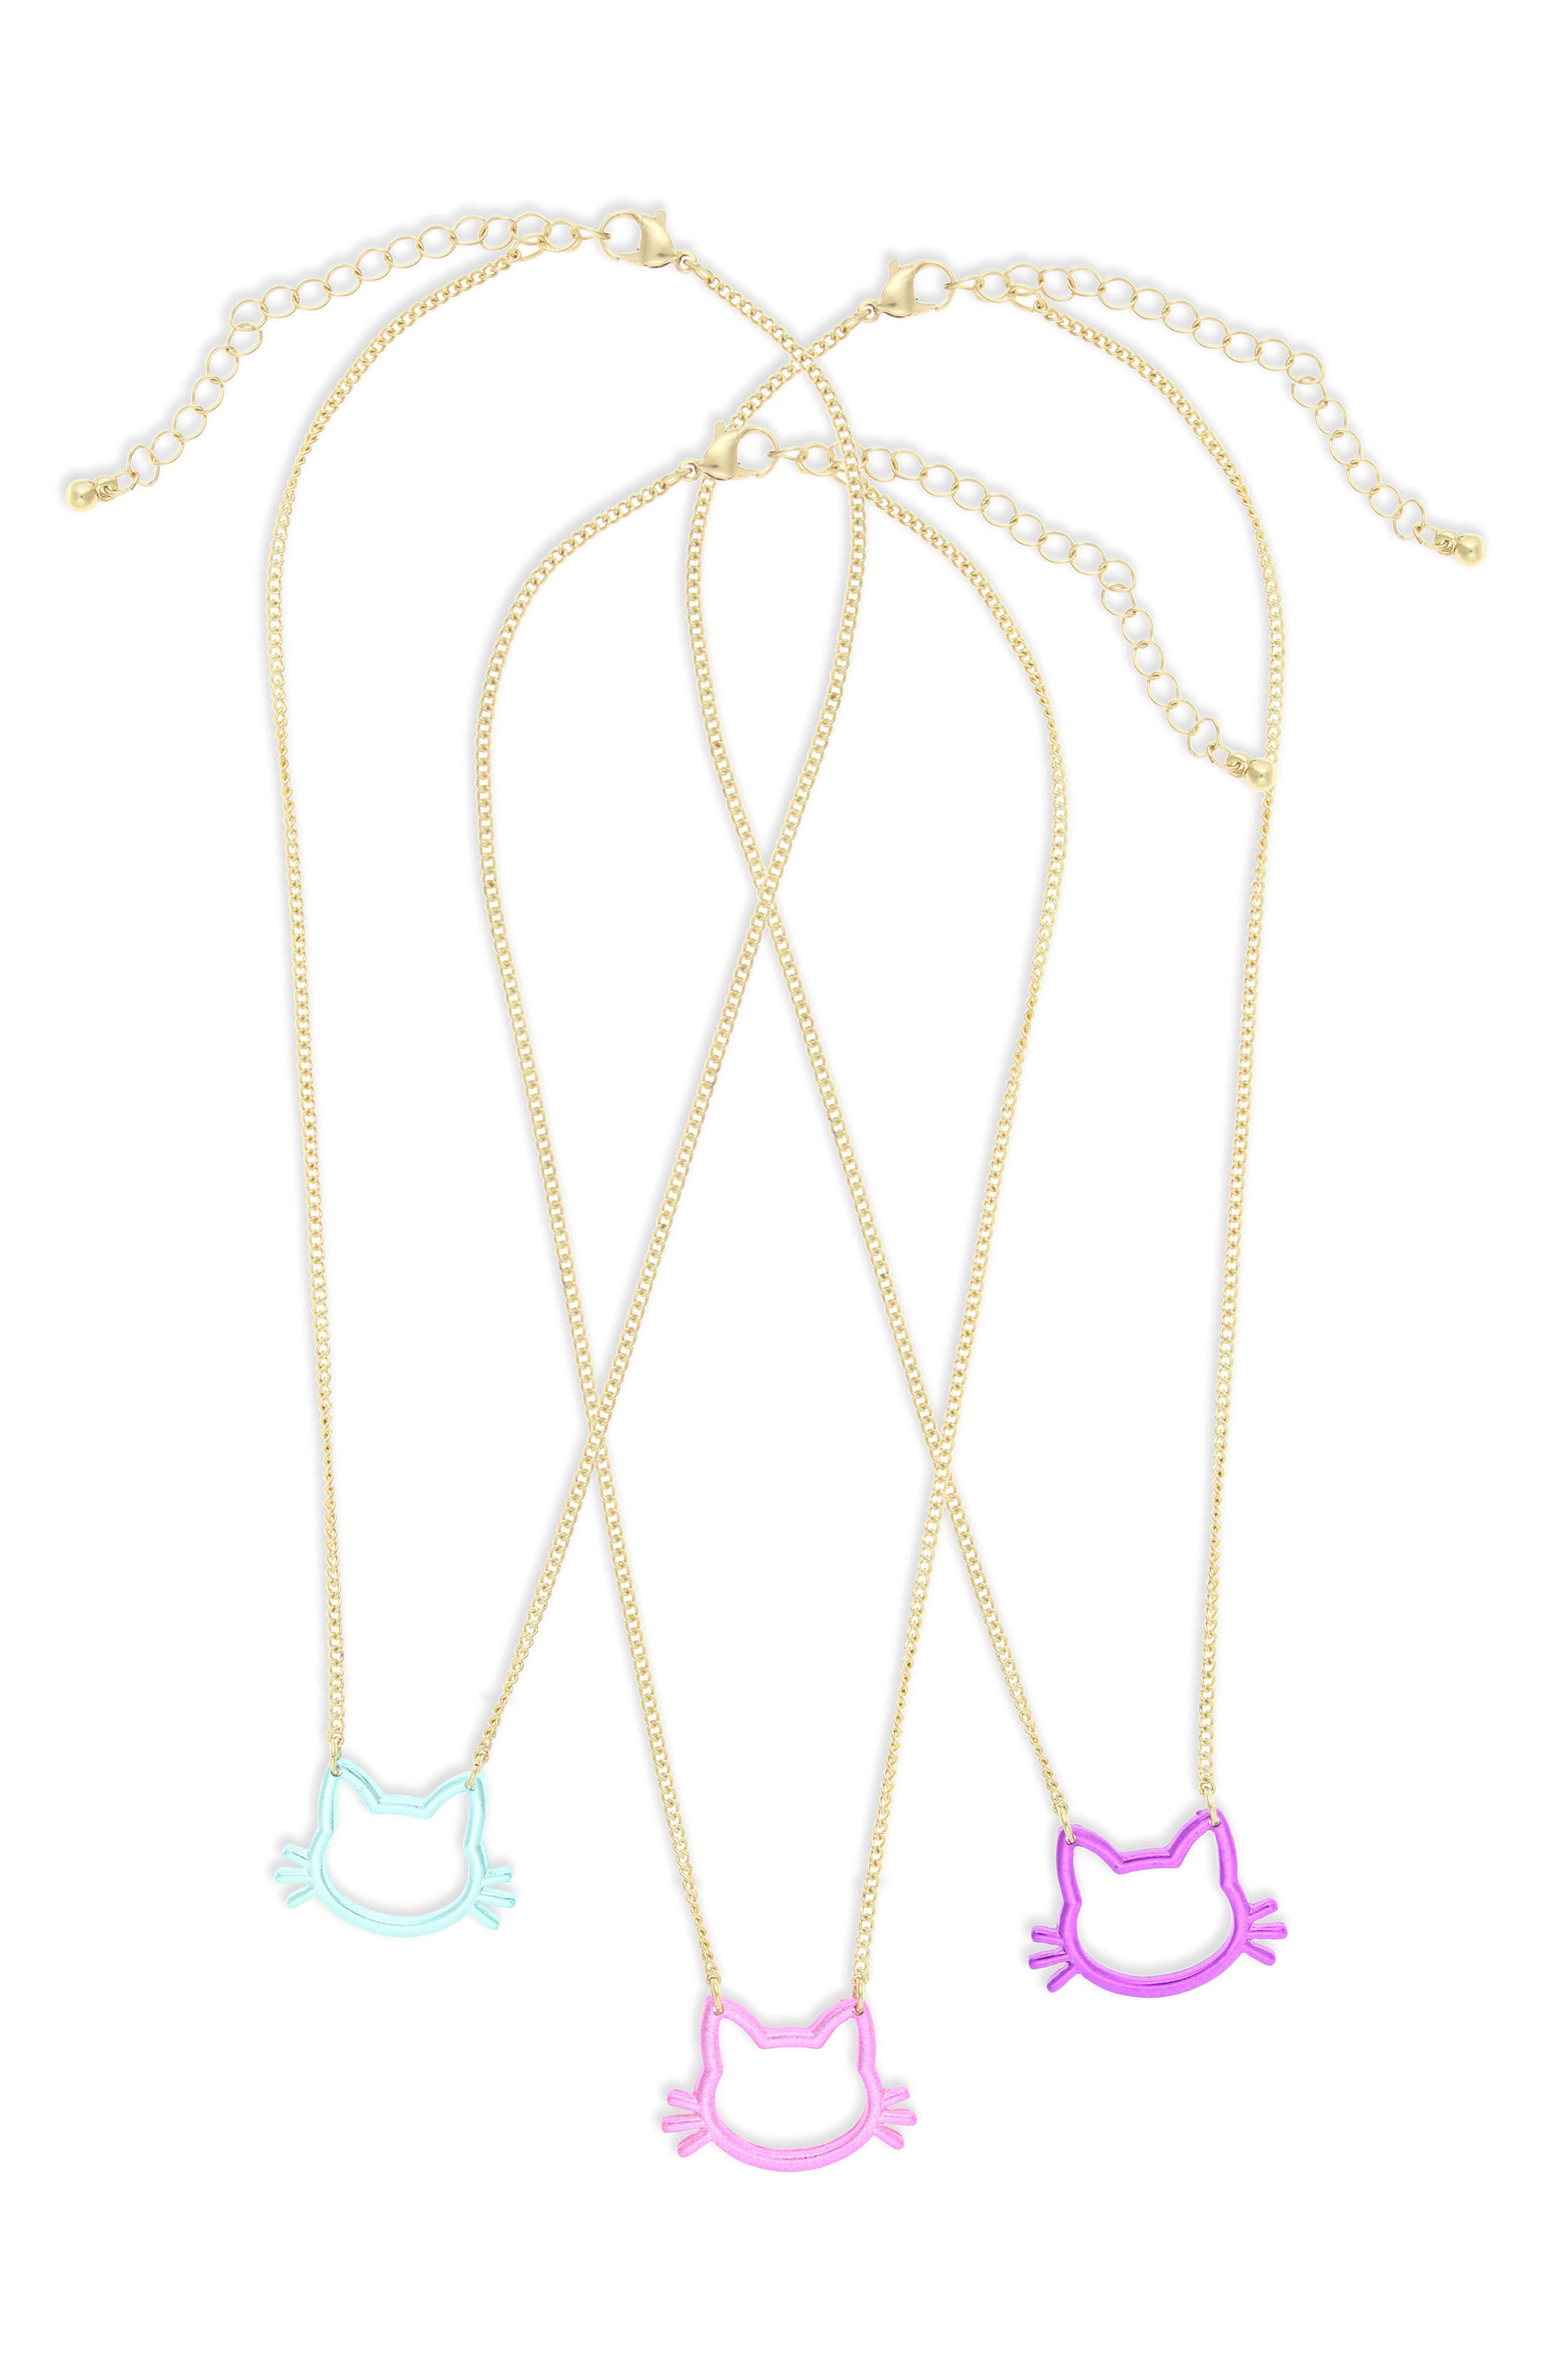 Set of 3 Cat Pendant Necklaces,                         Main,                         color, 655